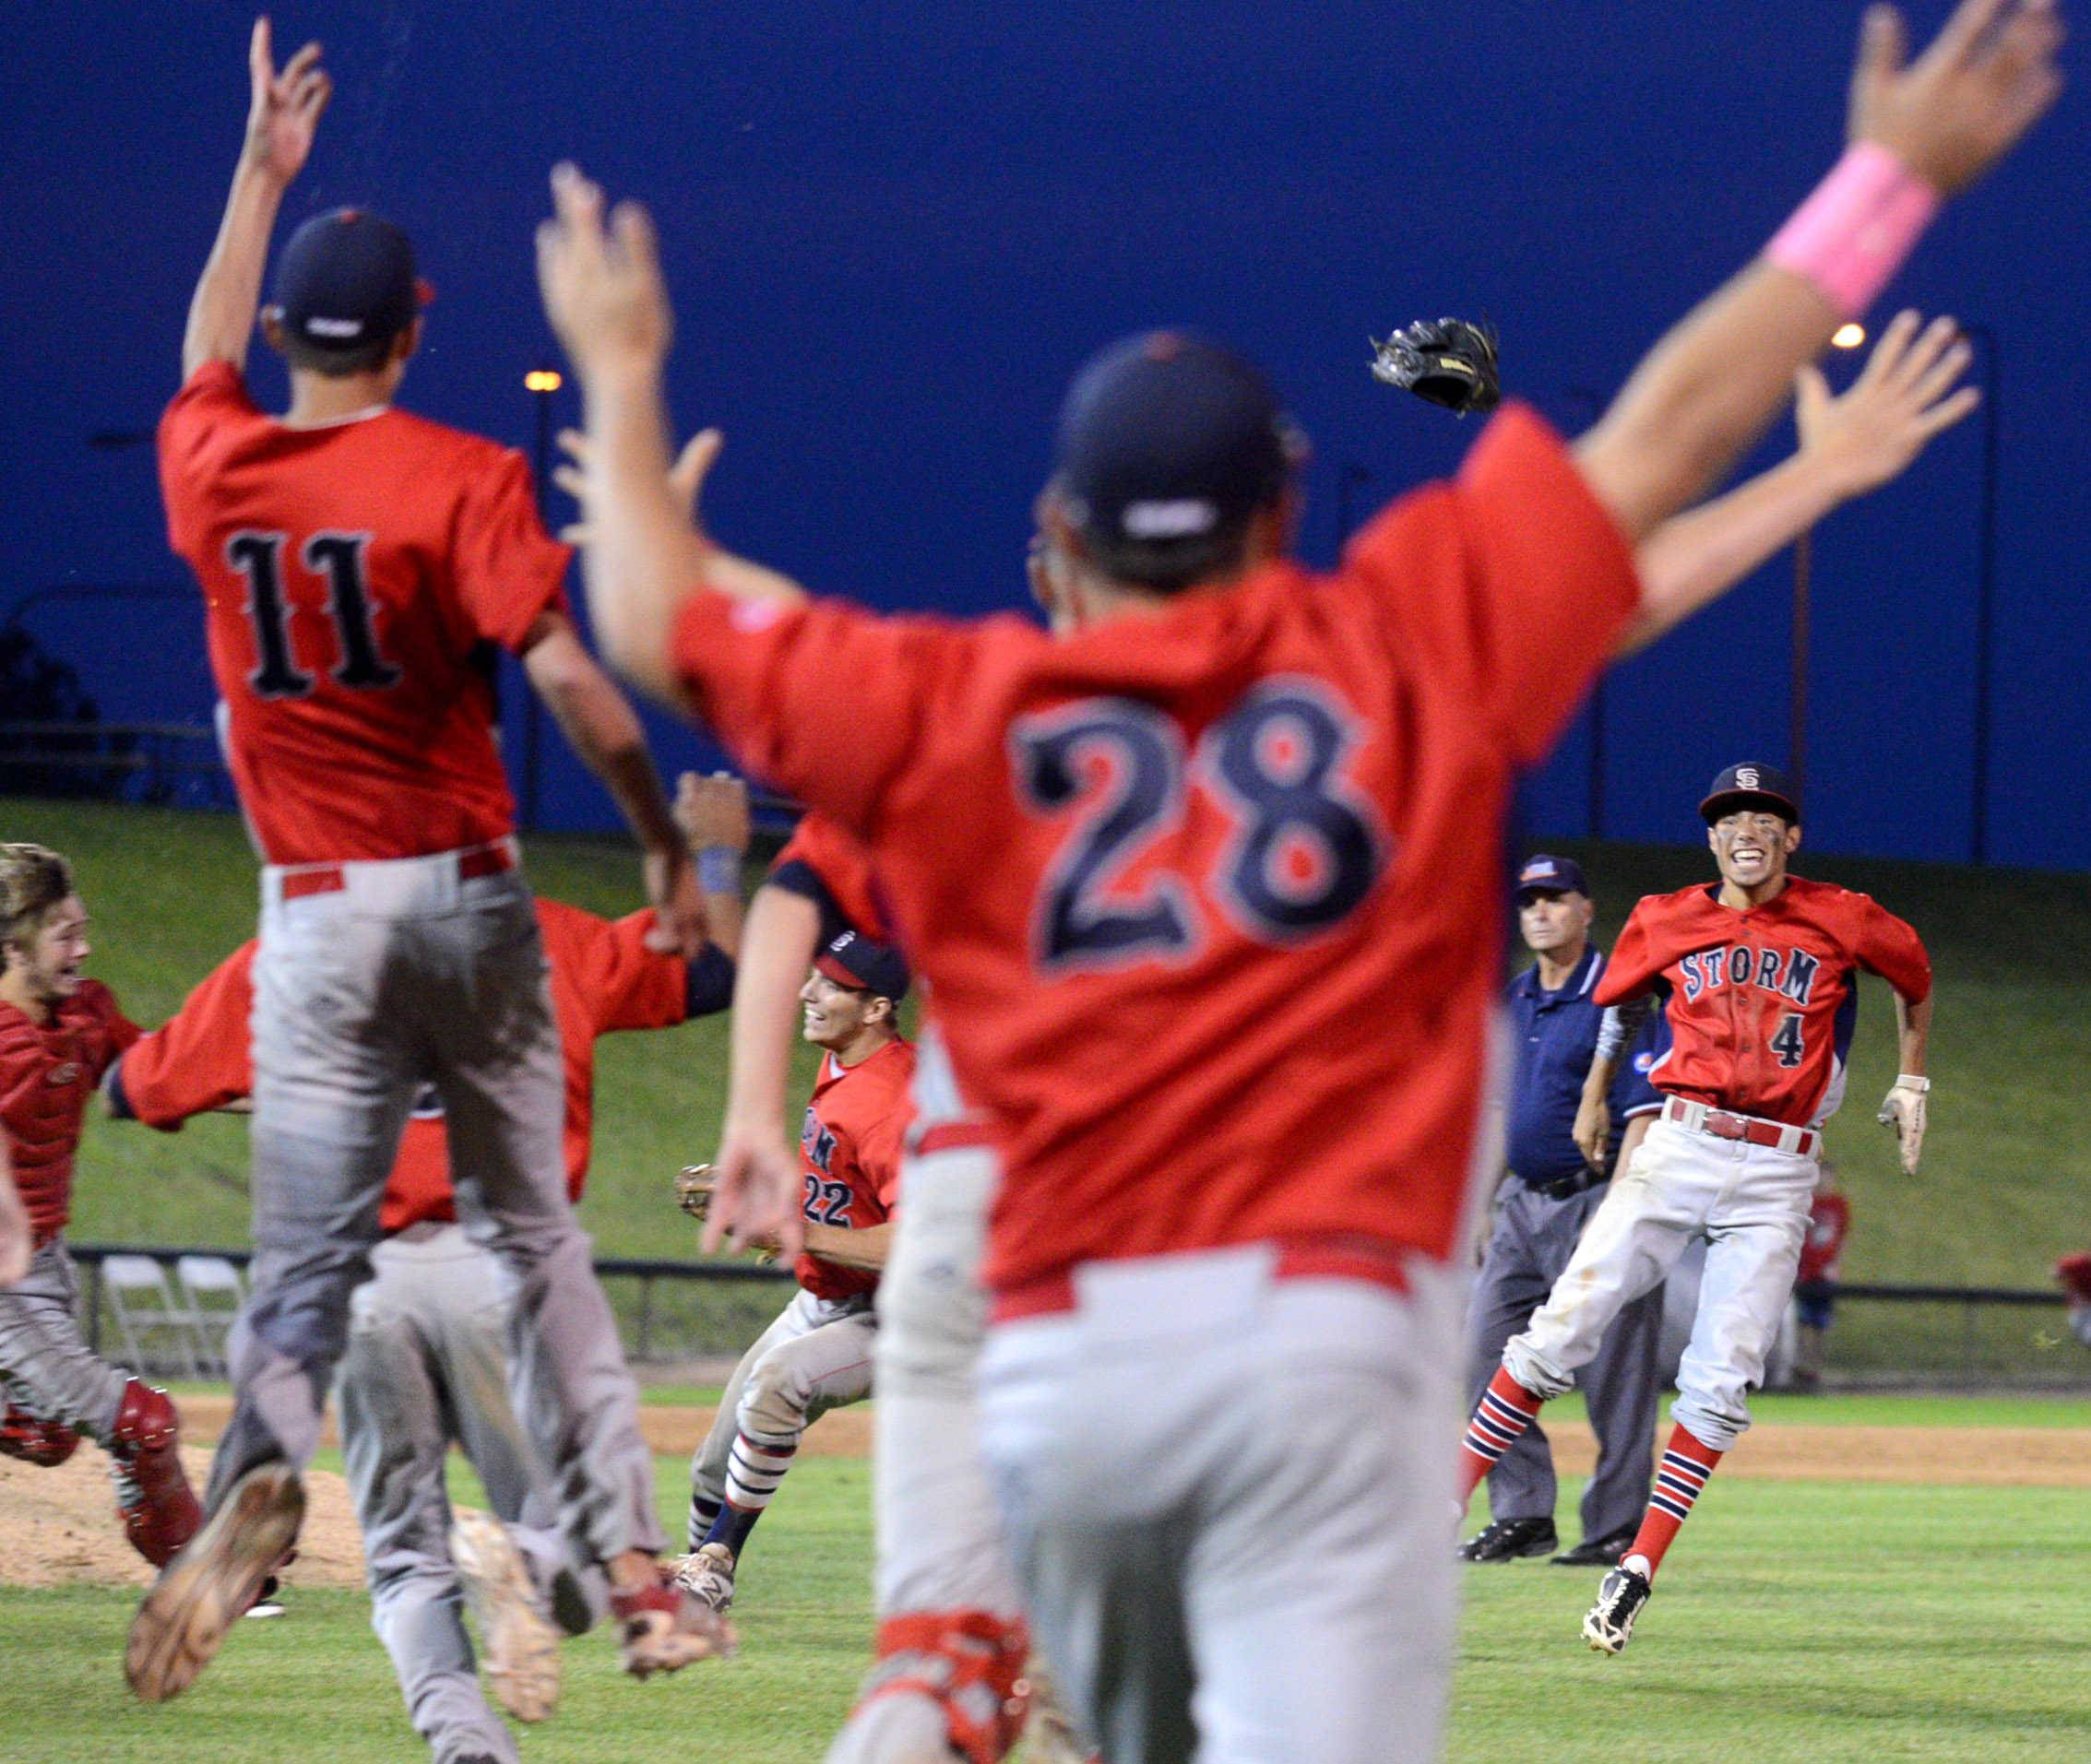 South Elgin rallies, heads to state